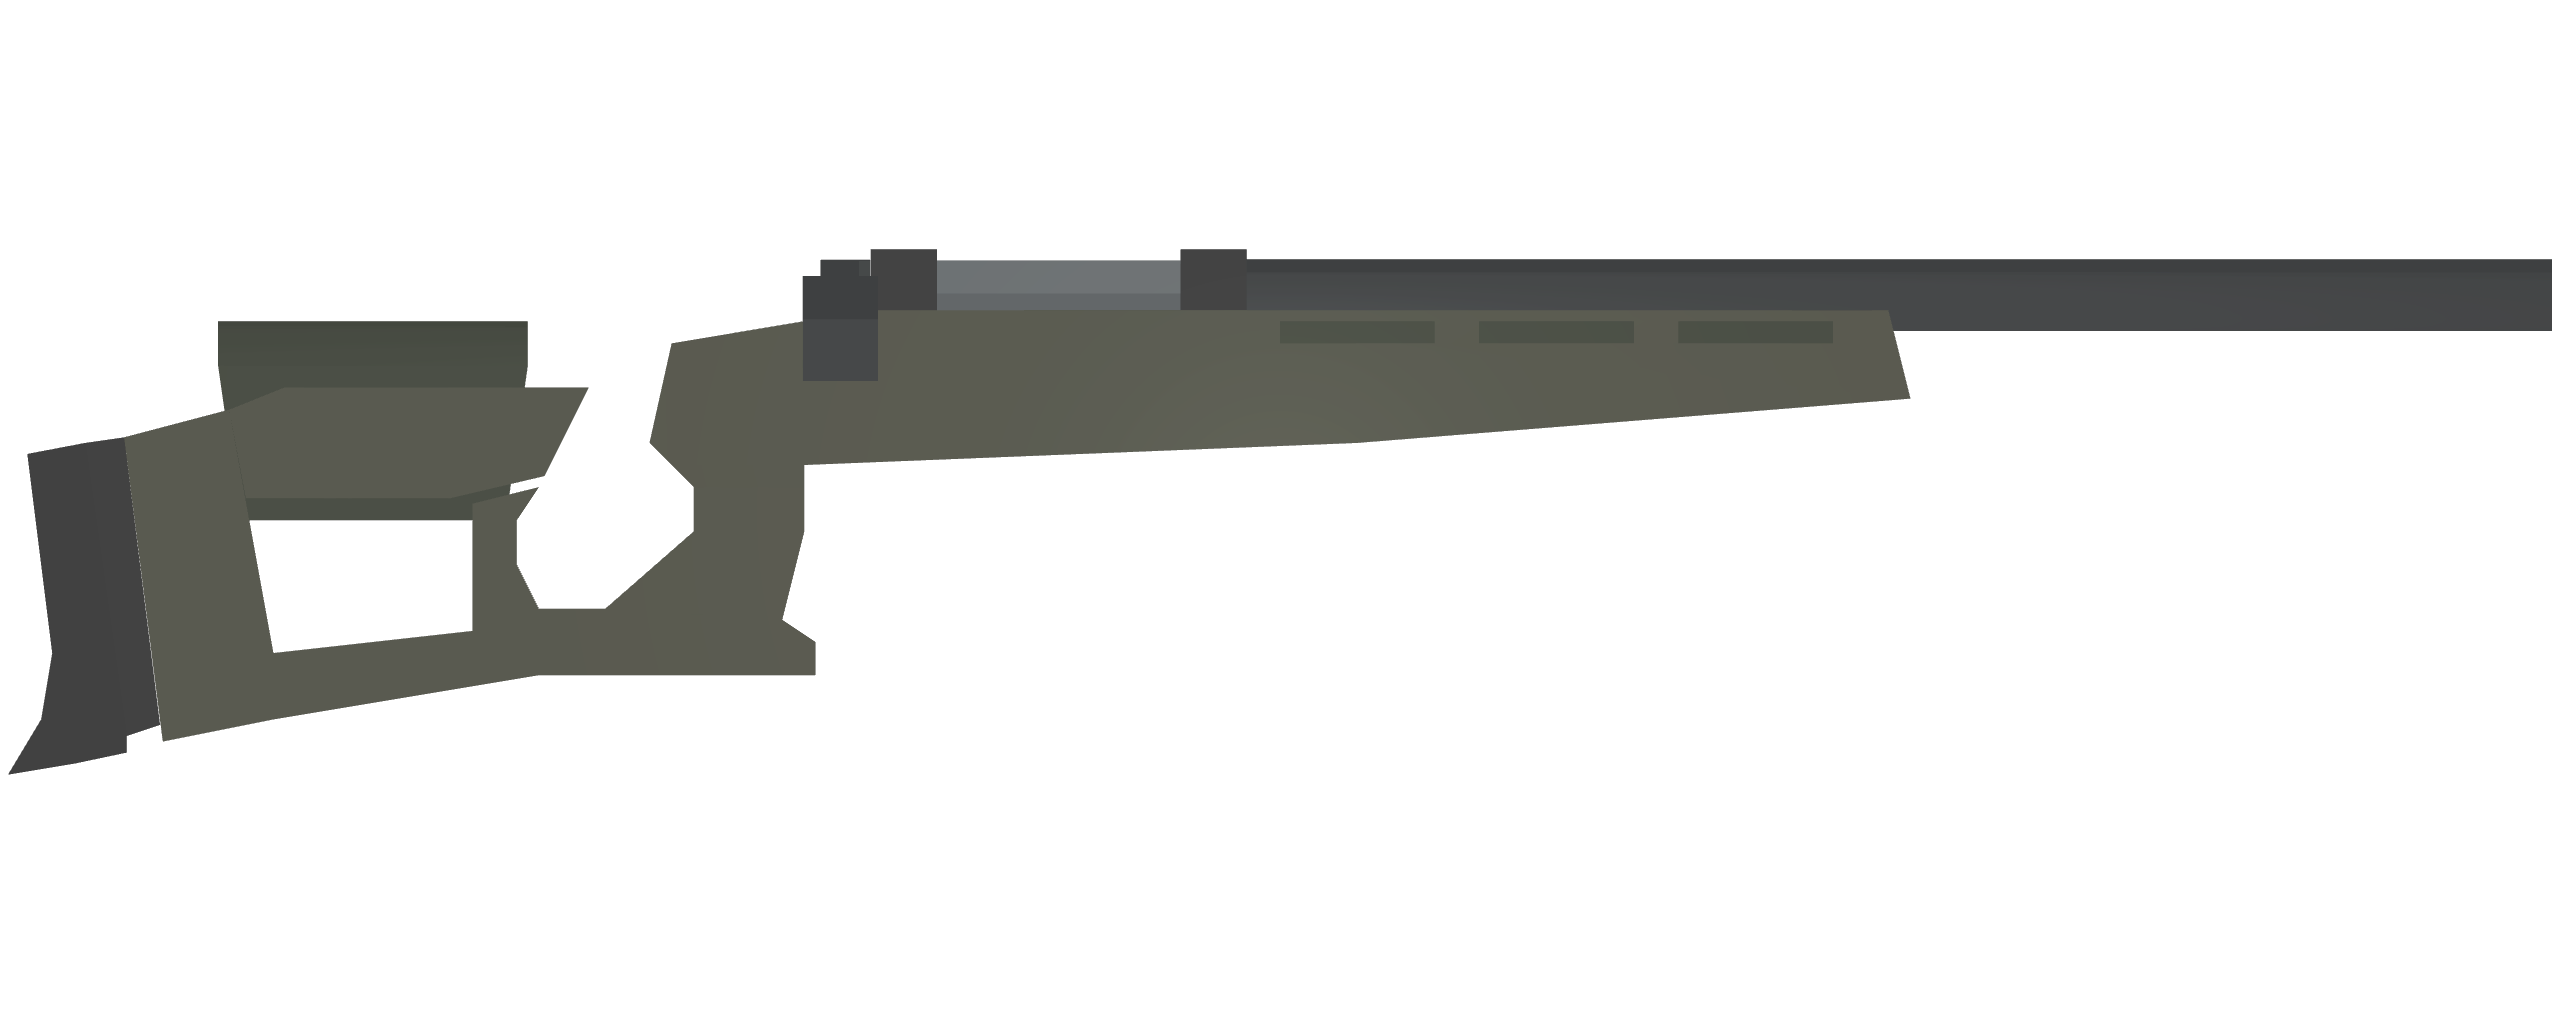 Unturned - All Weapons ID's for Uncreated Warfare Mods - Neutral Weapons - D137DA7